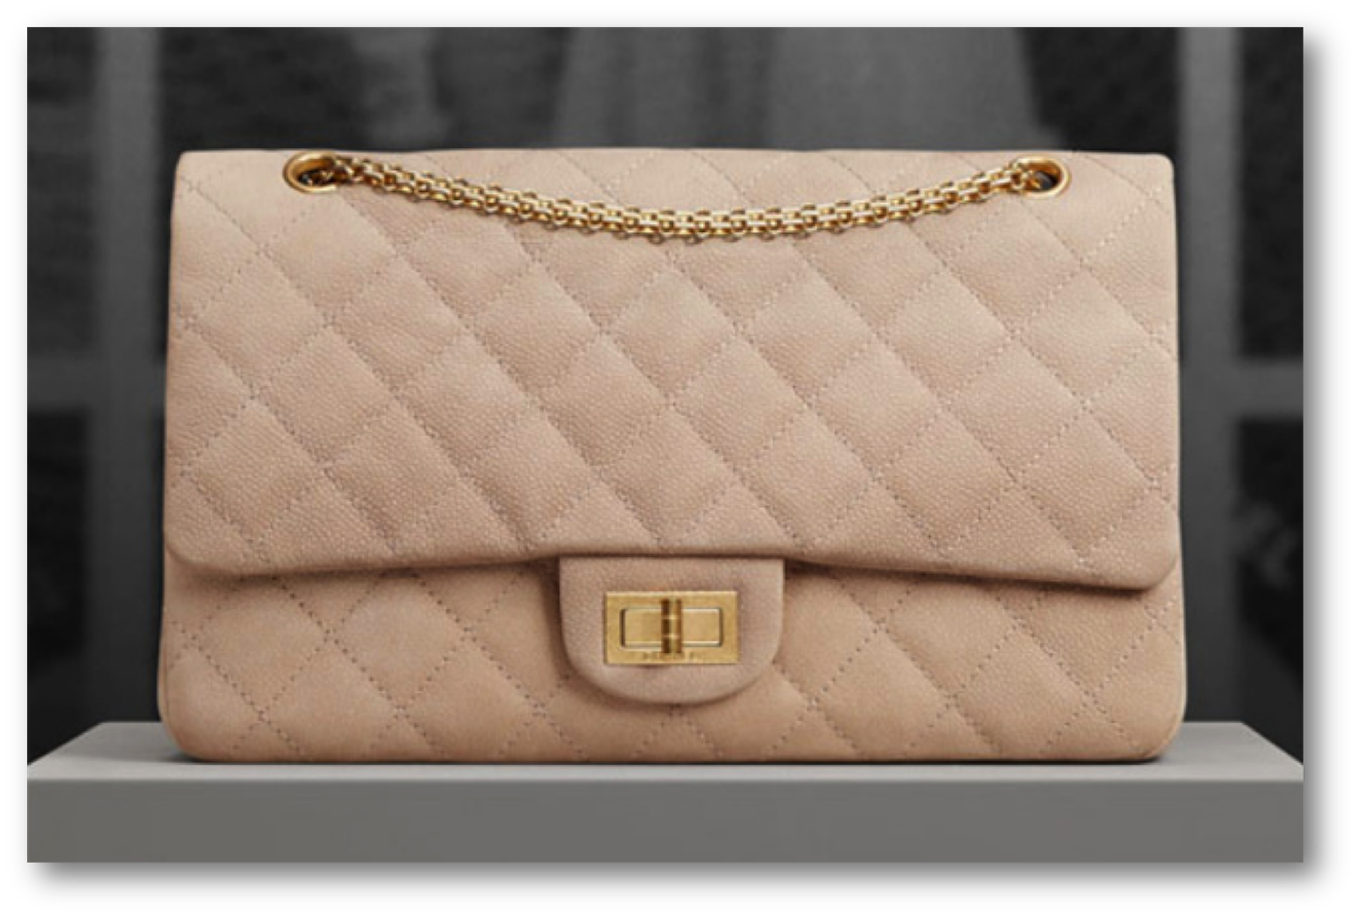 luxe-bags-2013_LUXE-DESIGNER-BAGS_chanel-bag-2013_CHANEL-BAG-TRENDS_THE-CHANEL-BAG-2014-COLLECTION_CHANEL-INSPIRED-TRENDS_CHEAP-CHANEL-BAGS_NEW-CHANEL-BAG_COLOURFUL-CHANEL-BAG-ACCESSORIES